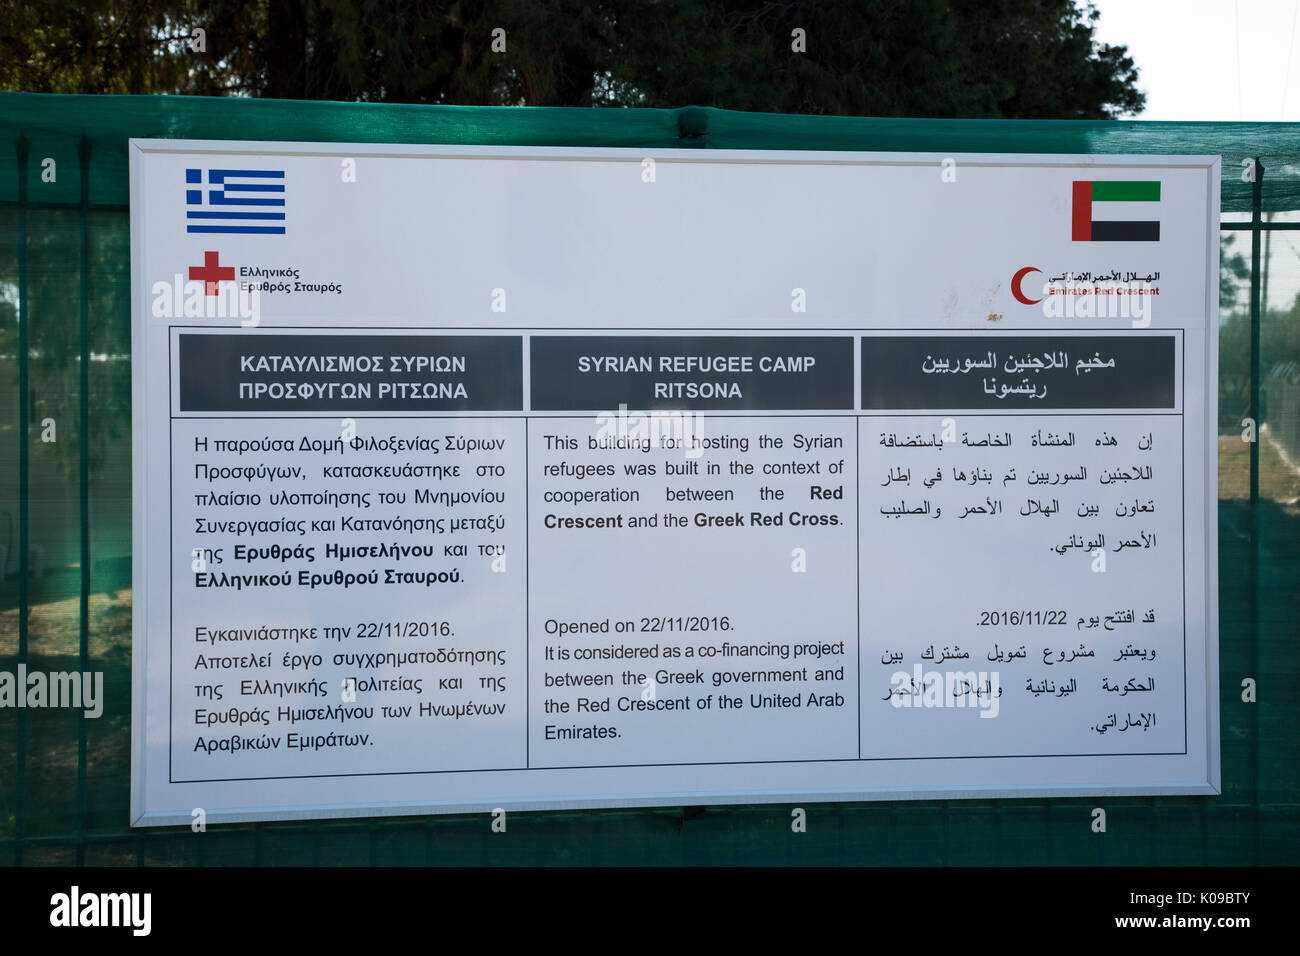 A sign at the entrance to Ritsona Refugee Camp in Greek, English and Arabic tells of cooperation of Greek Red Cross - Stock Image